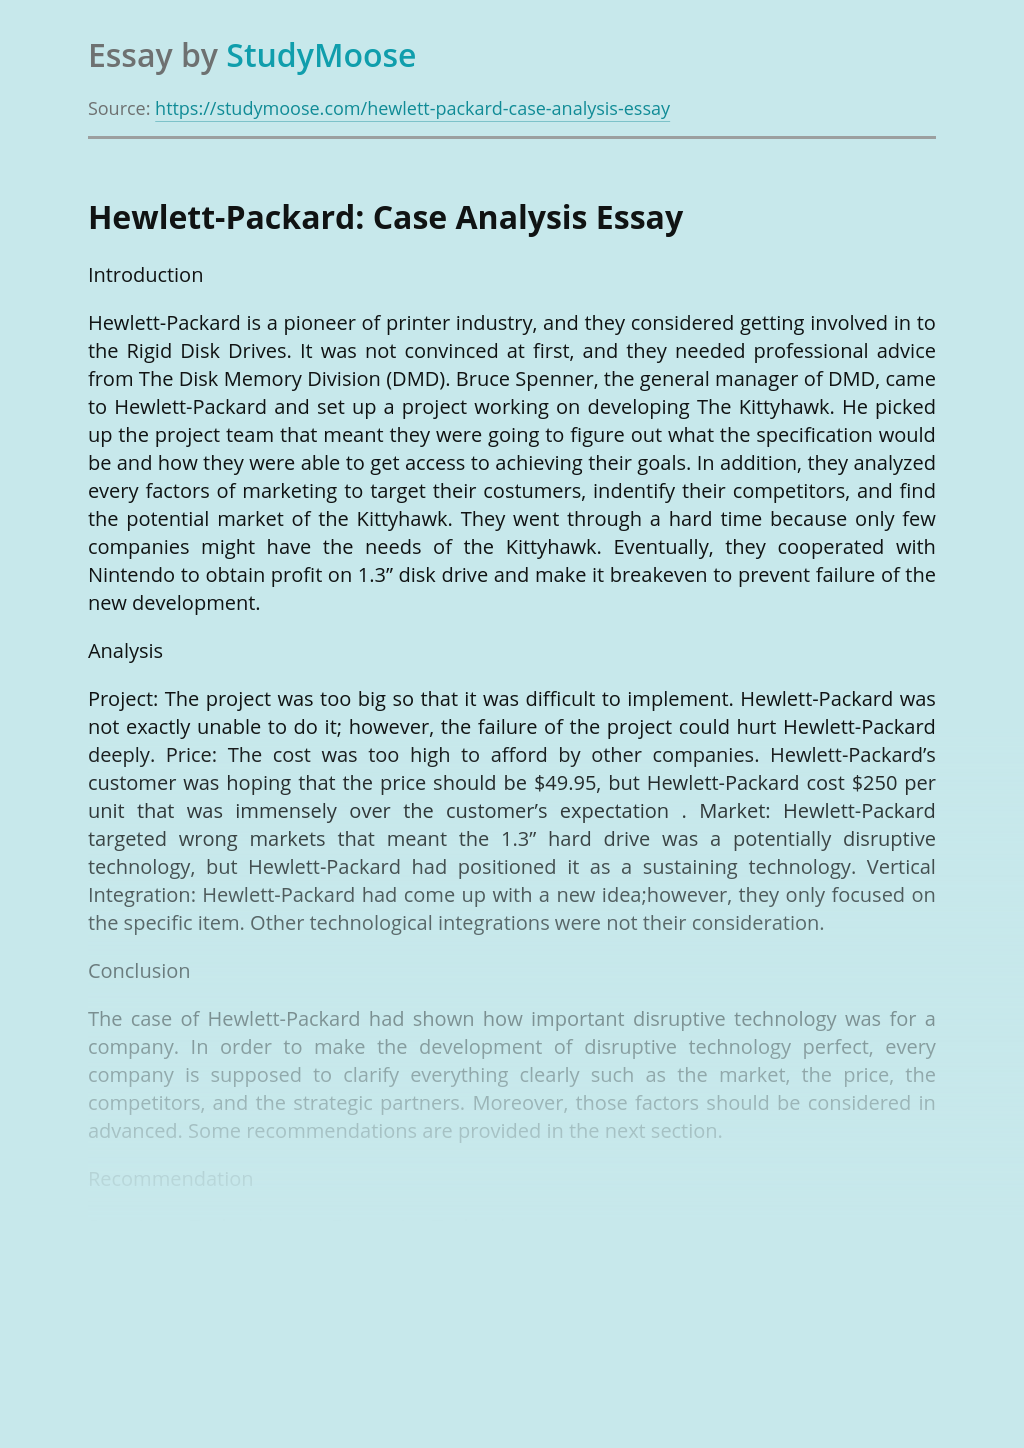 Hewlett-Packard: Case Analysis